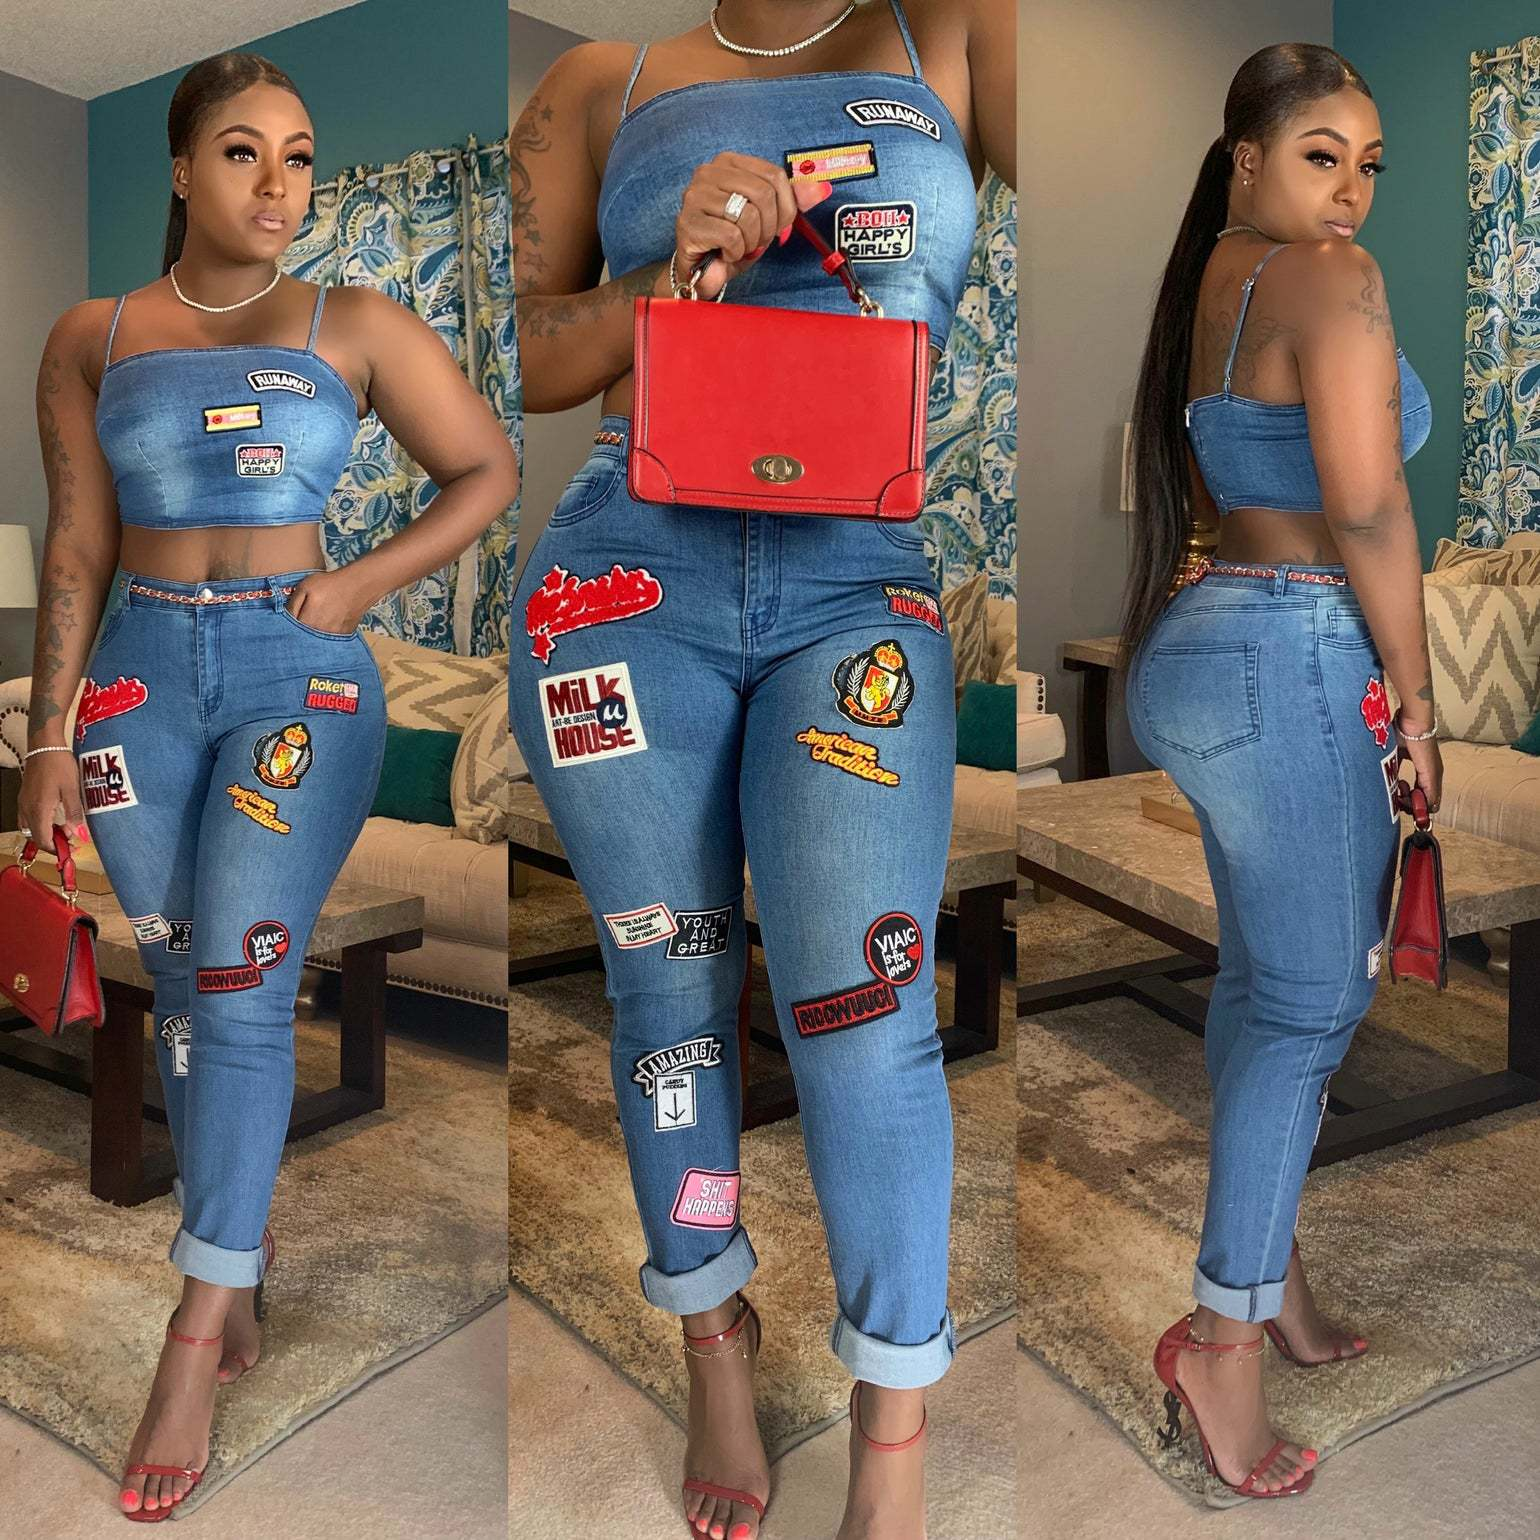 2019 European And American Women's Summer New Cartoon Stickers Flanging Fashion Jeans Suit